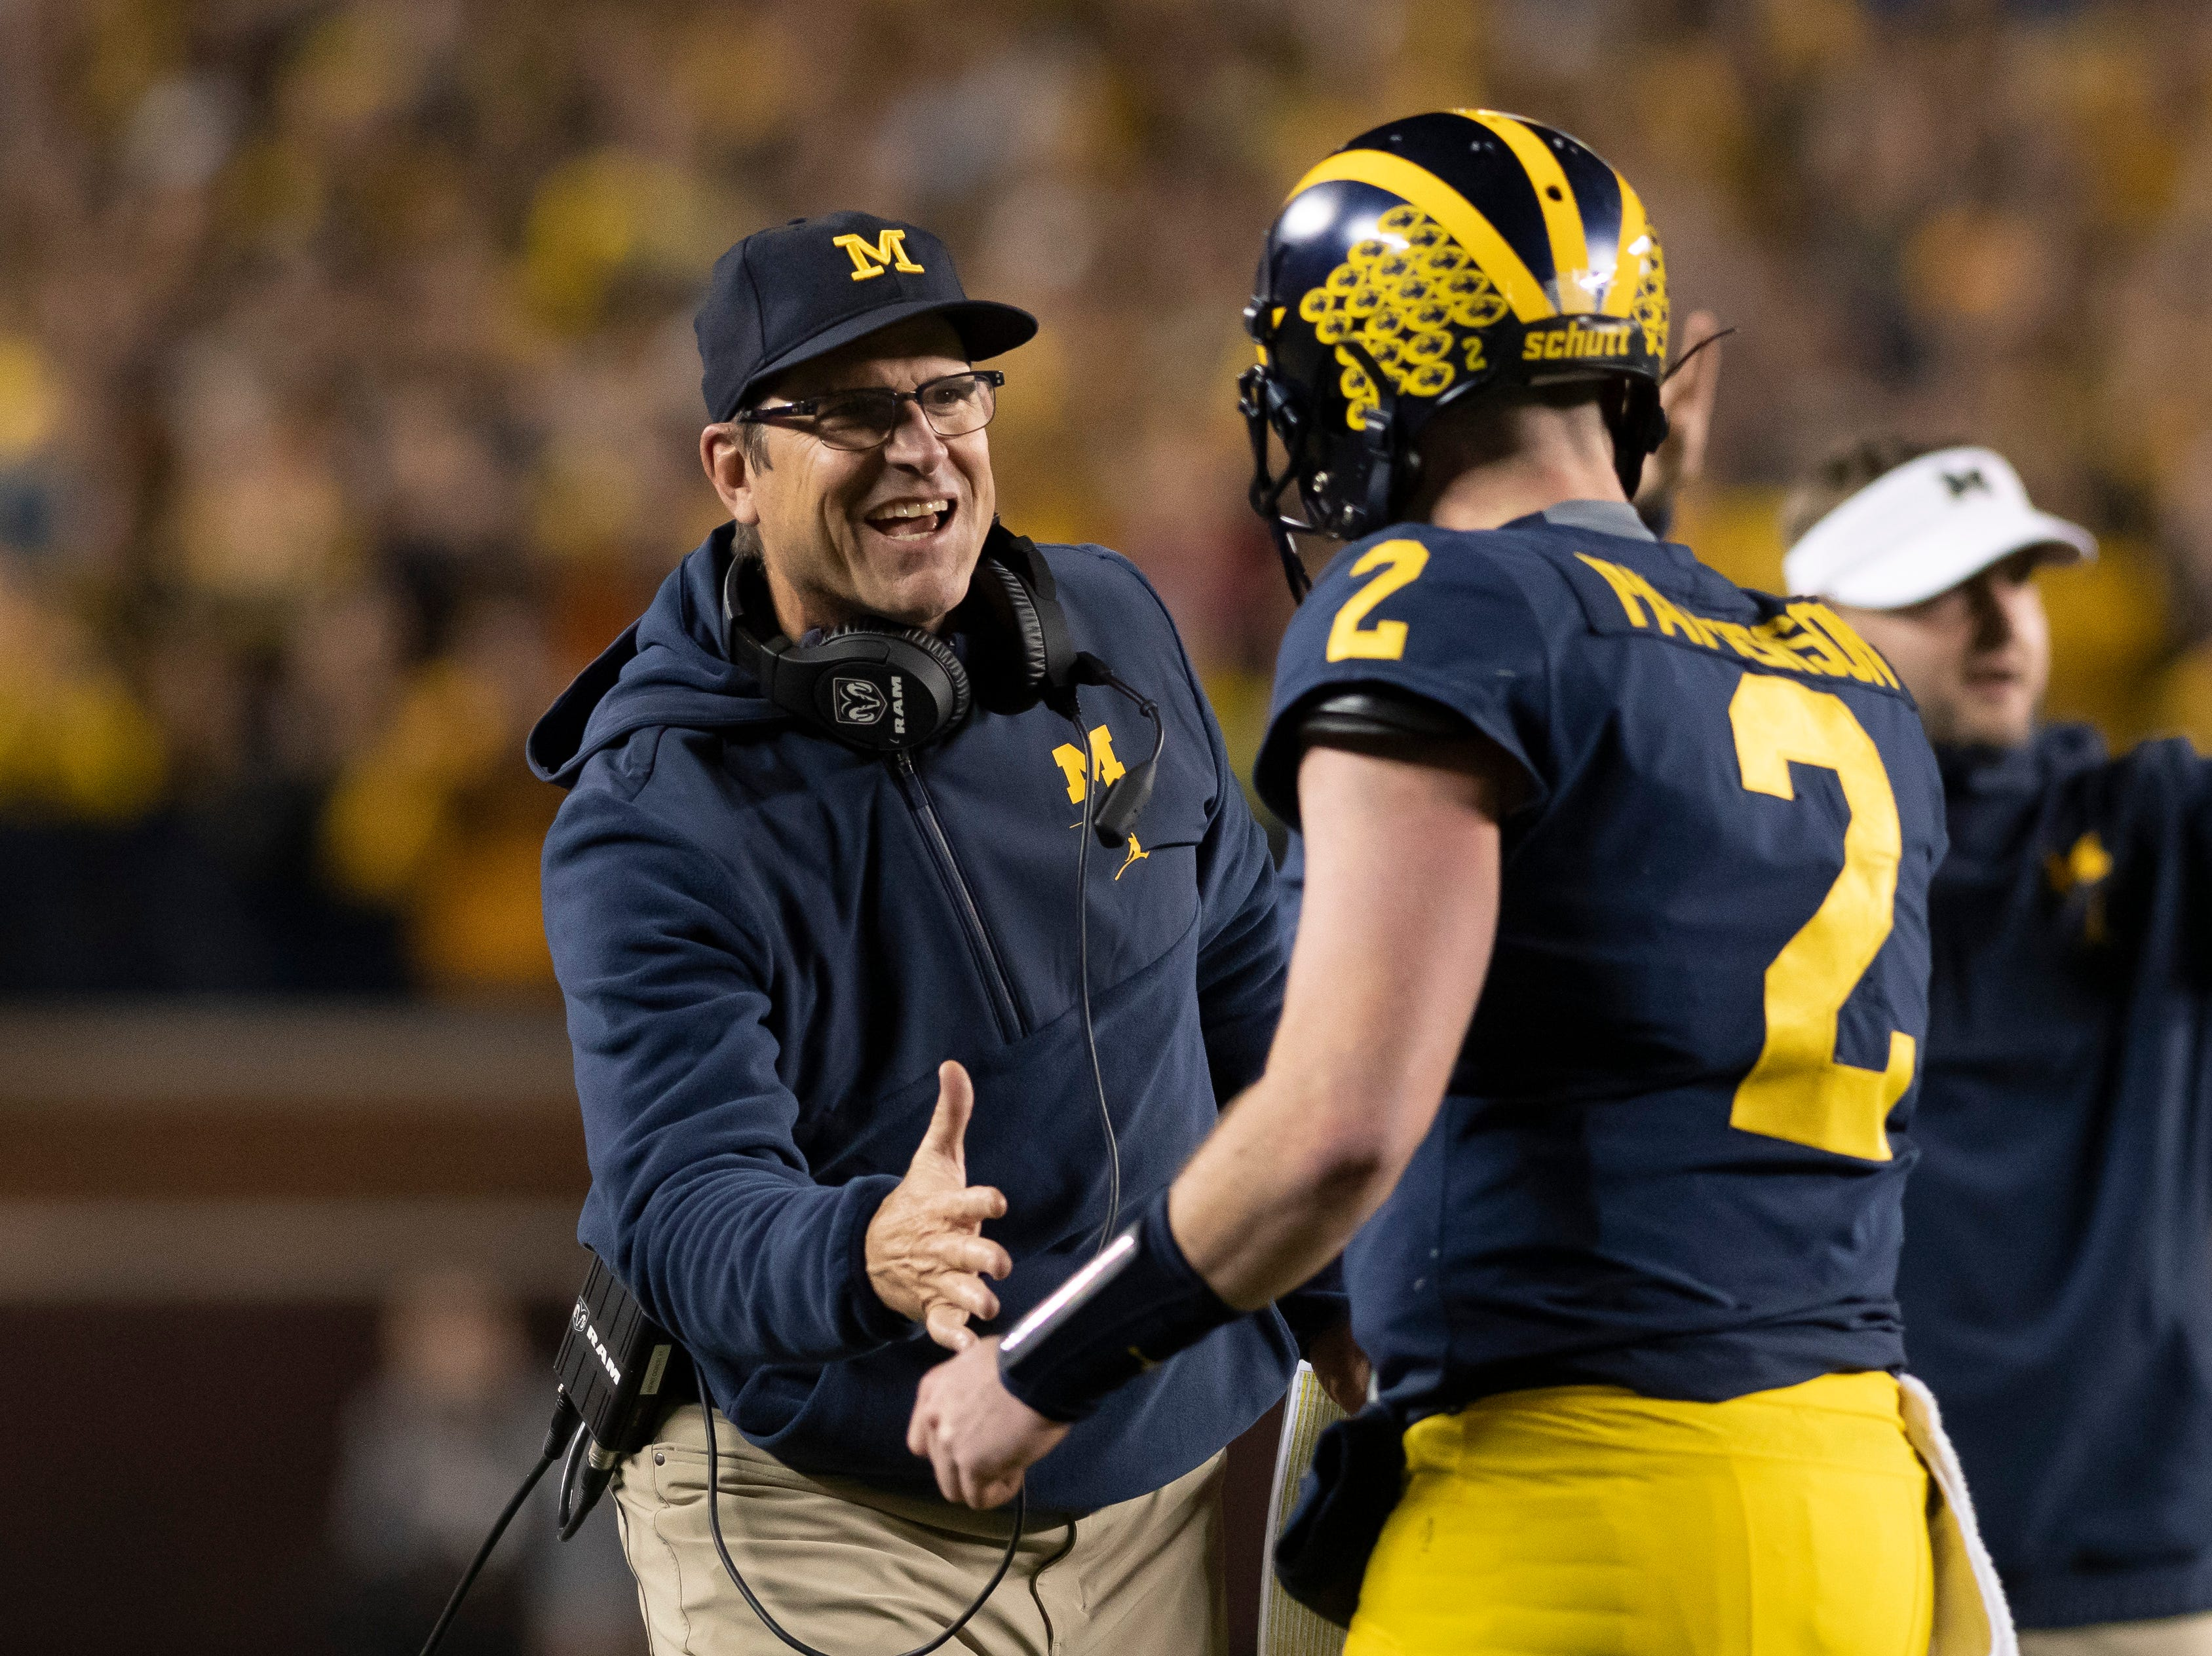 Michigan head coach Jim Harbaugh shakes quarterback Shea Patterson's hand after a touchdown in the second quarter.